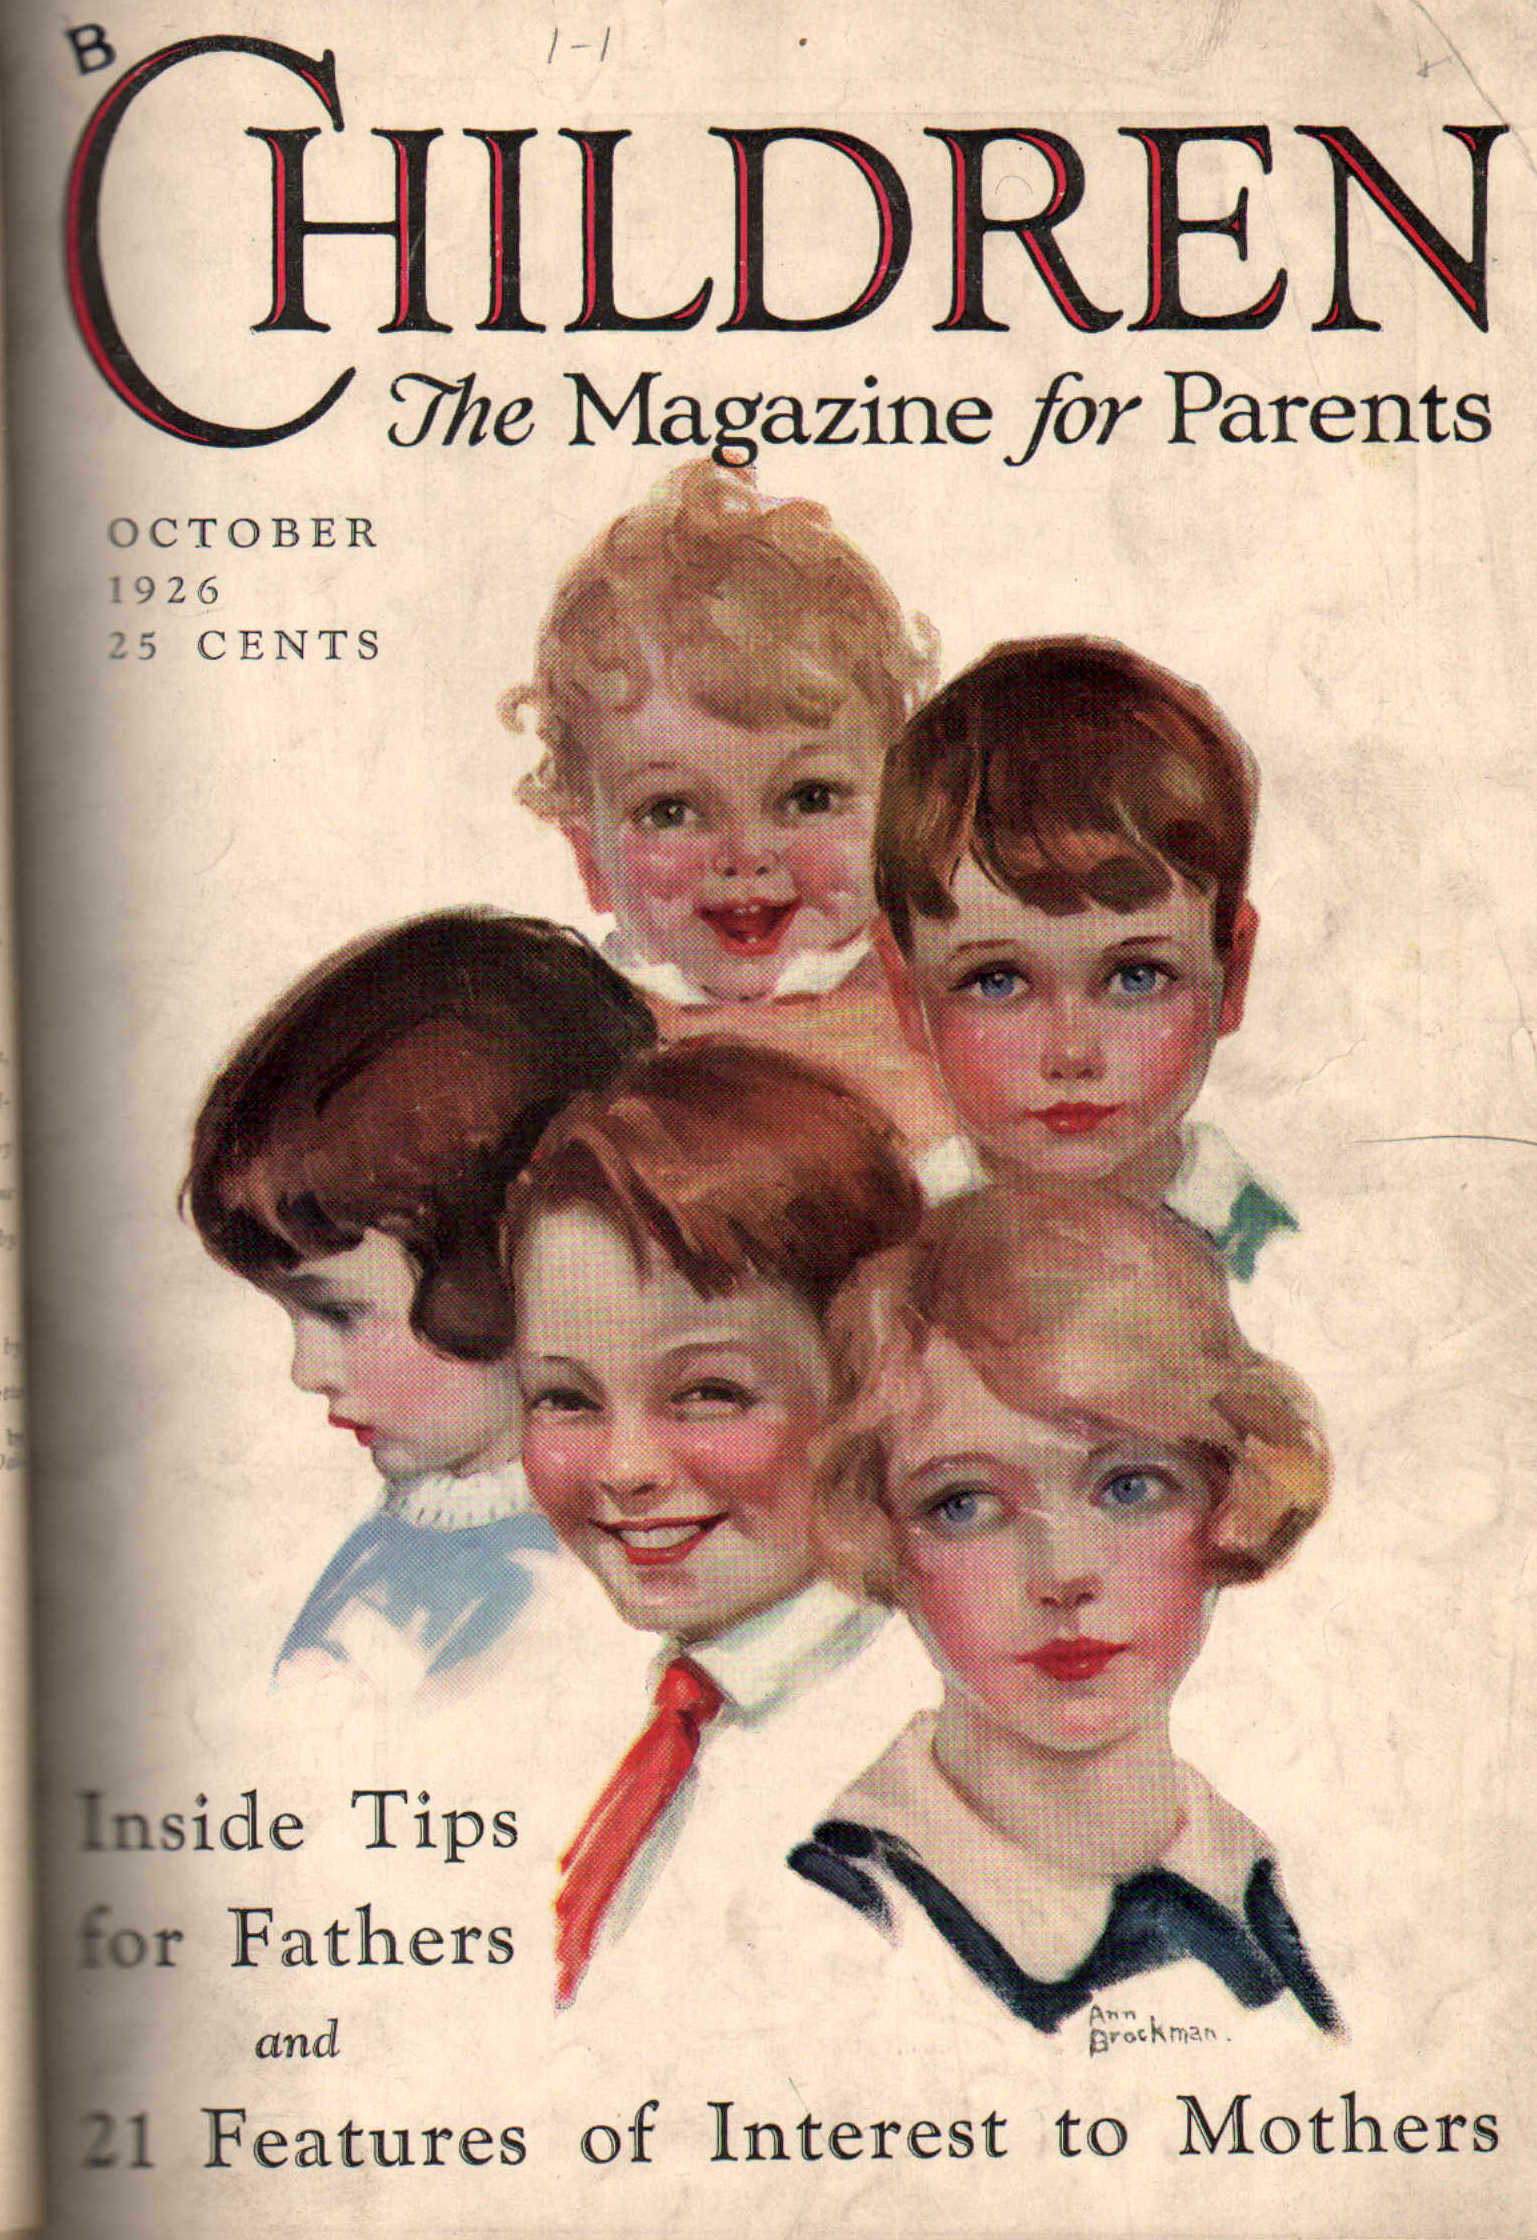 Children. The Magazine for Parents